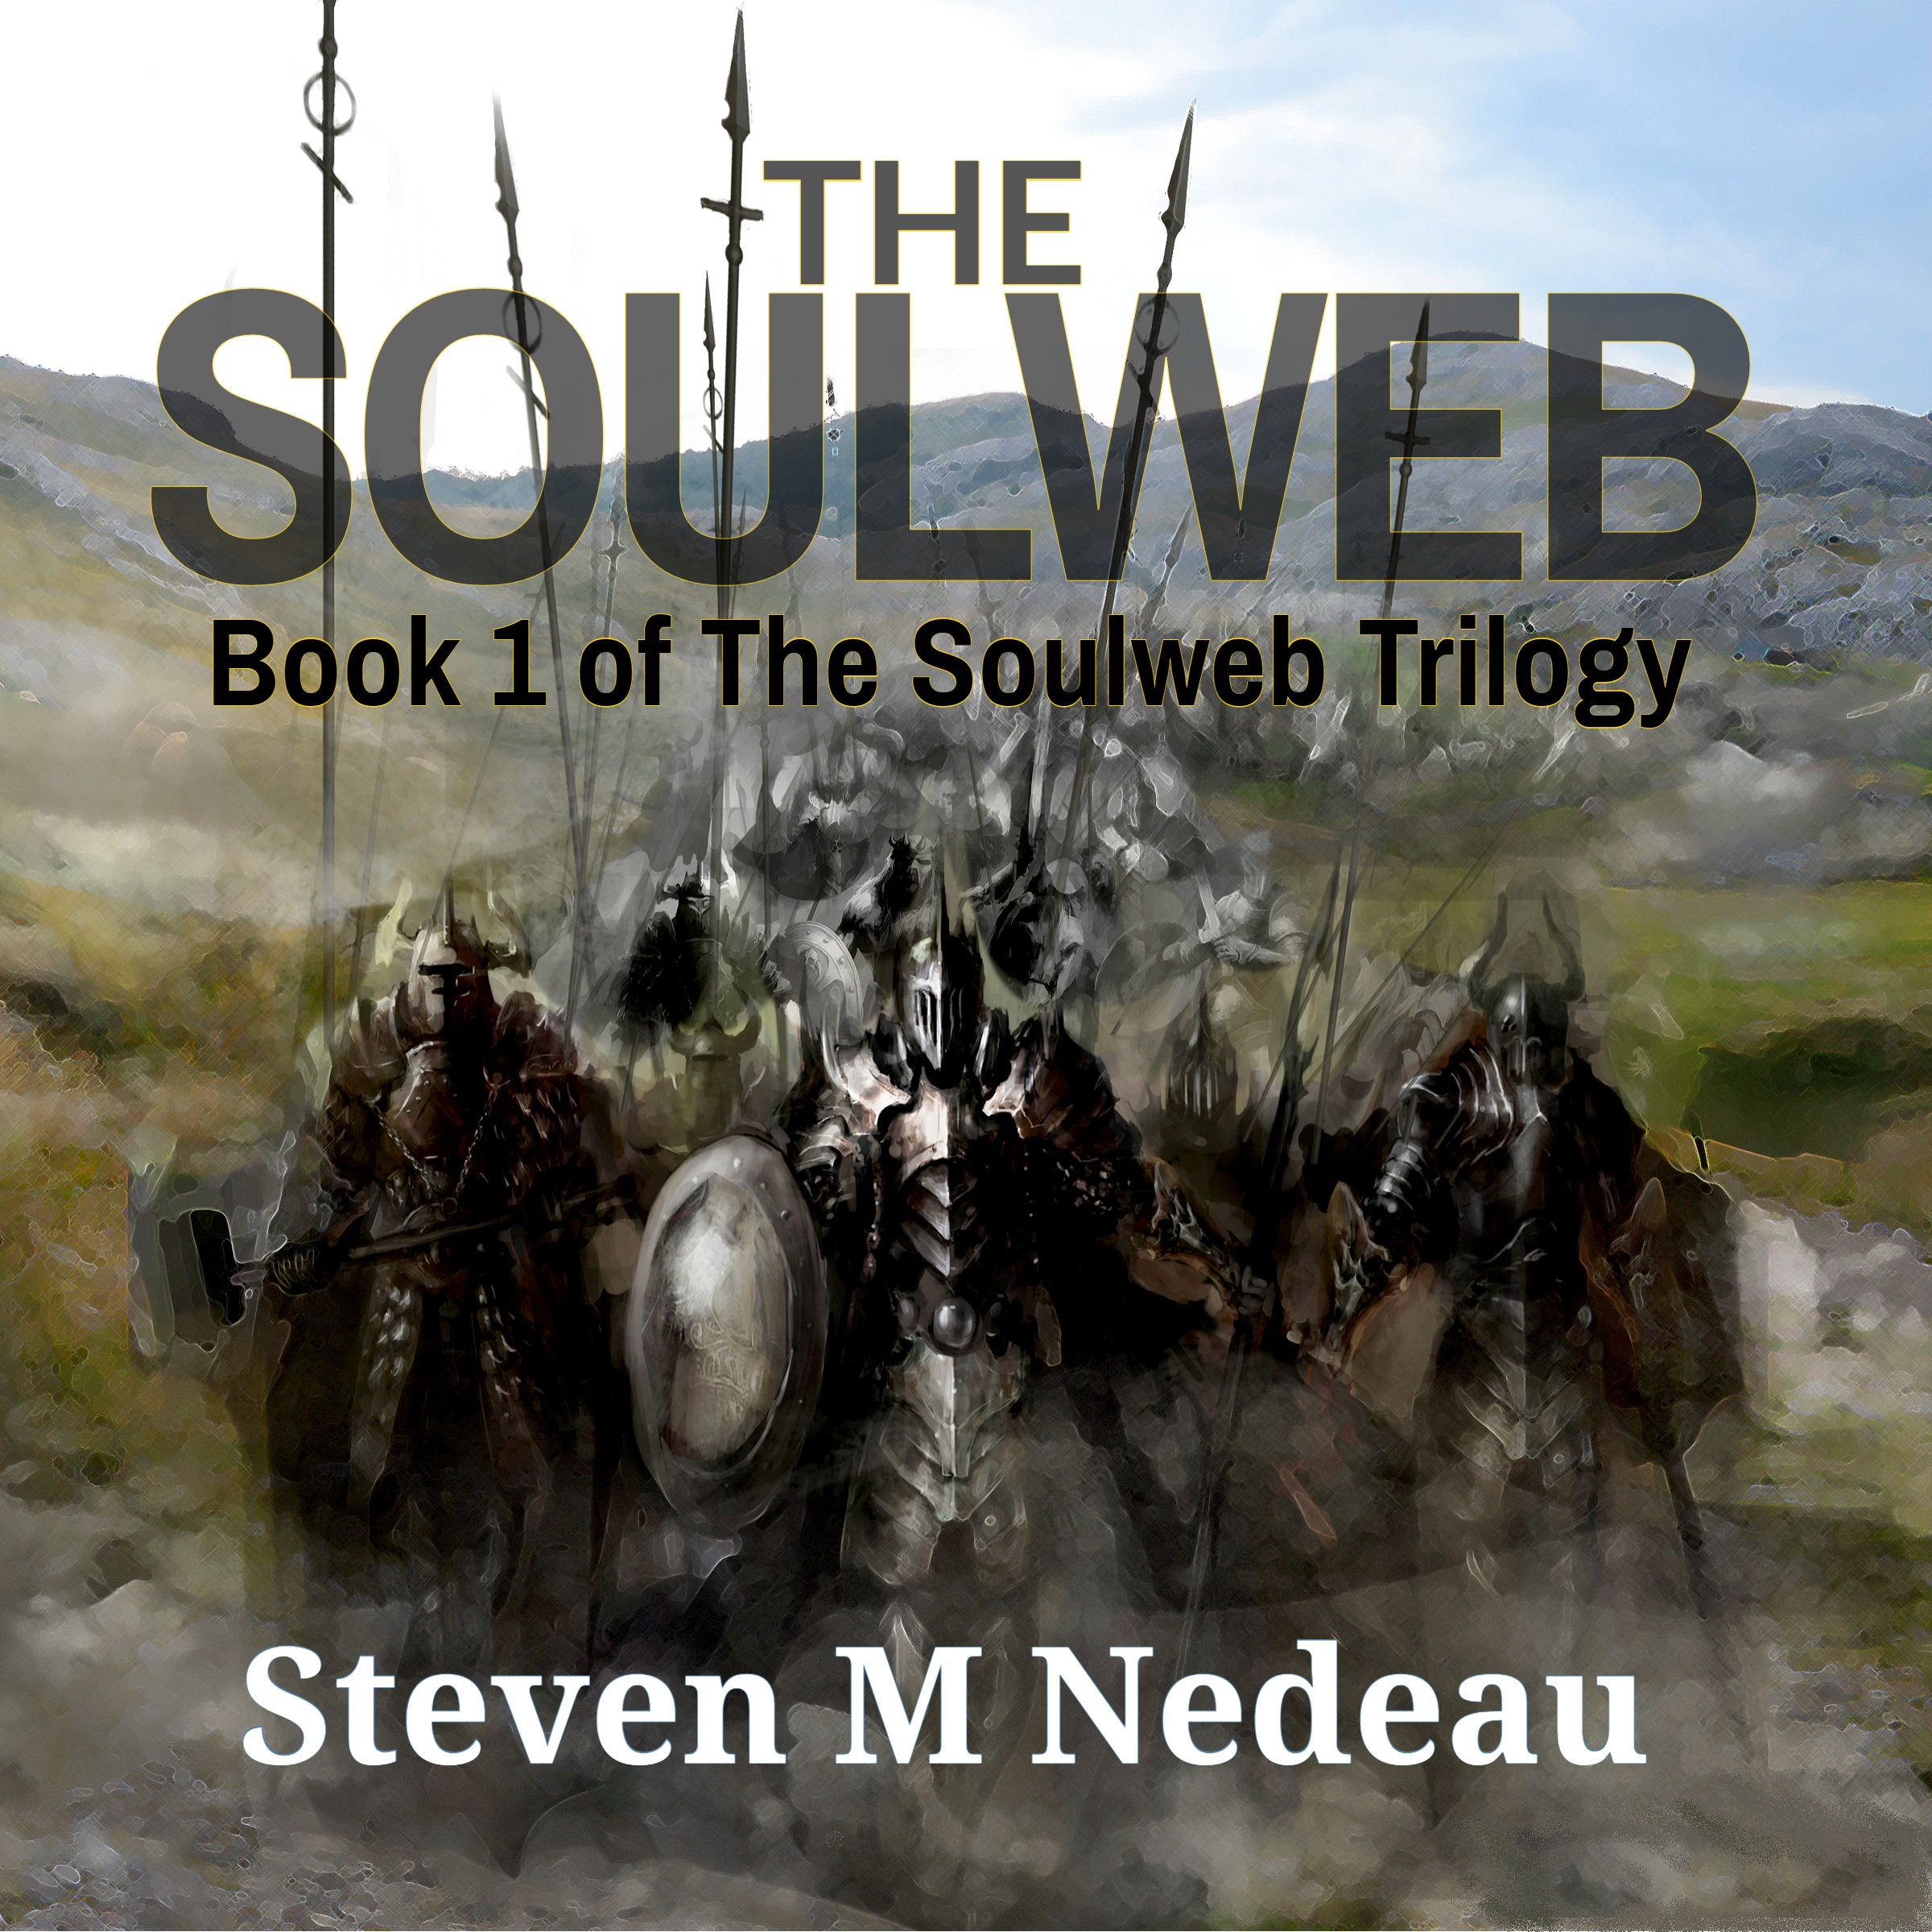 The Soulweb - Named one of the best new sword and sorcery fantasy book of 2017 by RankingSquad.com!Pushing heavy tomes onto marble shelves and translating archaic text until the wee hours of the night could not prepare Jaron for the trials in store for him. After years of teaching history, he will learn that books do not always tell the truth as he becomes a pawn in a war between kings.Centuries ago, King Mavius's spell caused destruction beyond reasoning, weaving a web around and through the souls of his knights. Even now the spell of that long dead king pulls at his descendants and Jaron must trade his books for blades when Mavius, with his knights behind him, returns from beyond the grave to reclaim his throne.